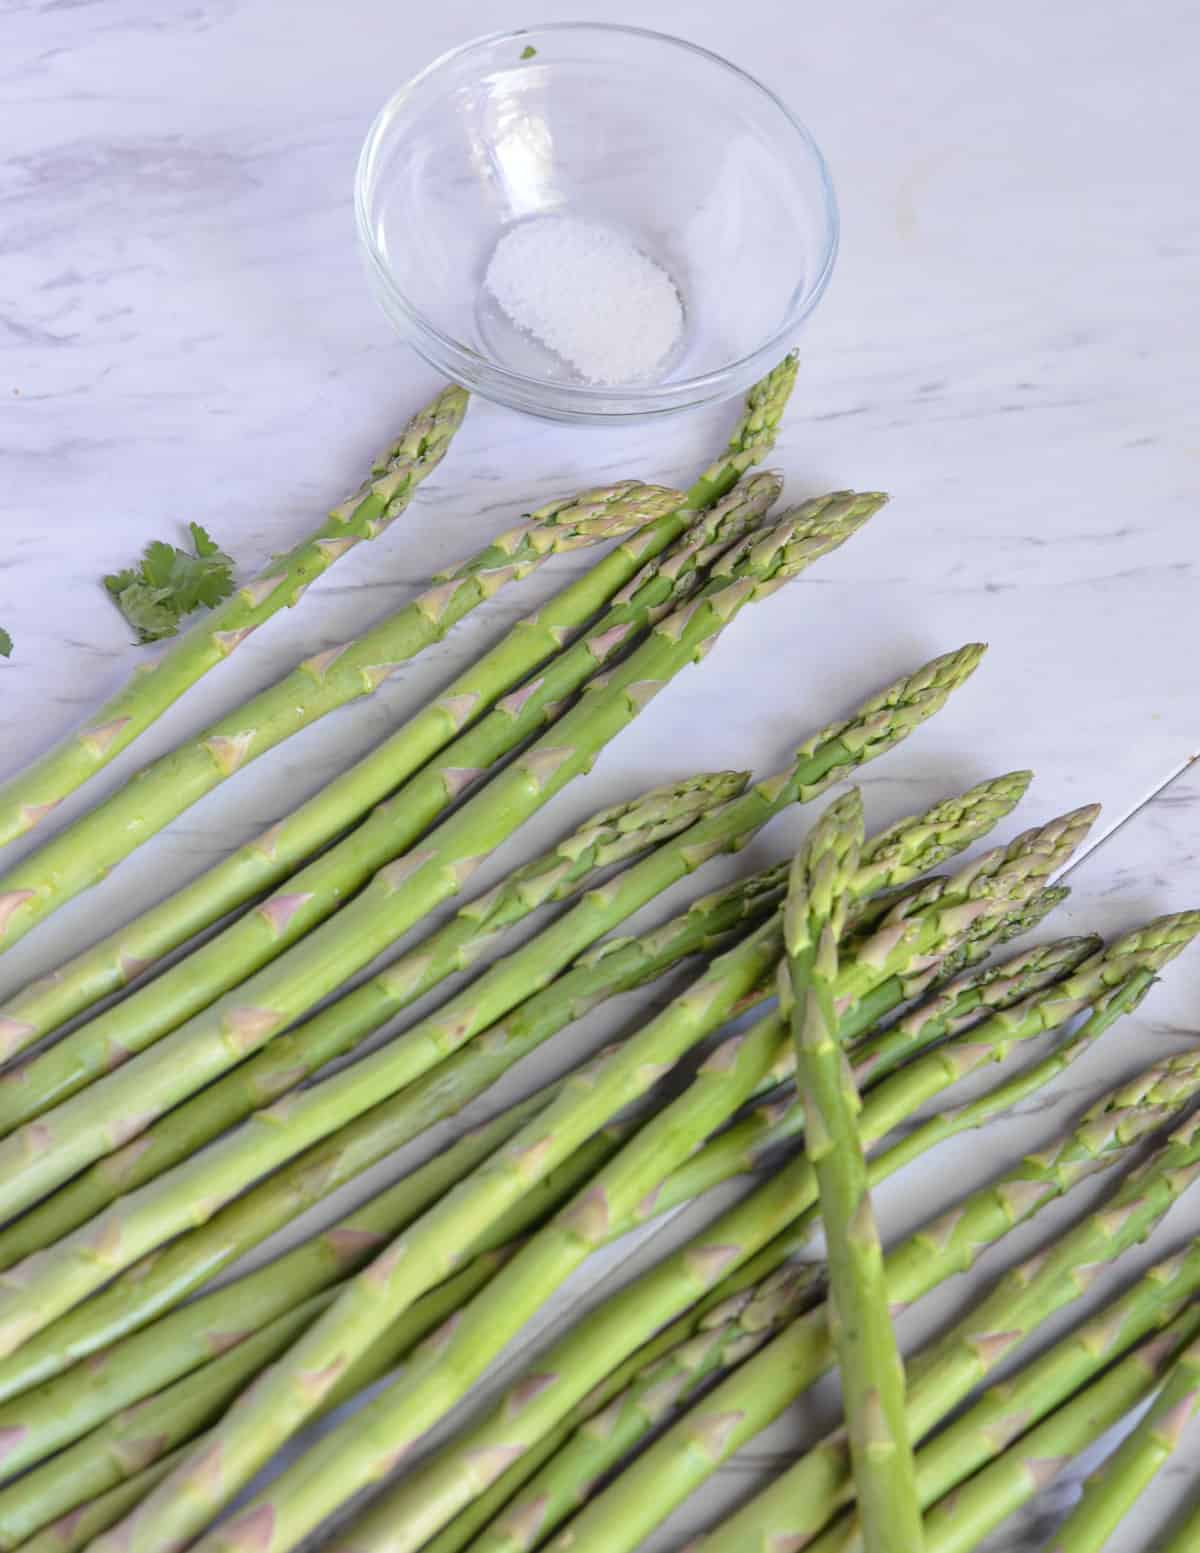 asparagus and salt shown in the pic for ingredients